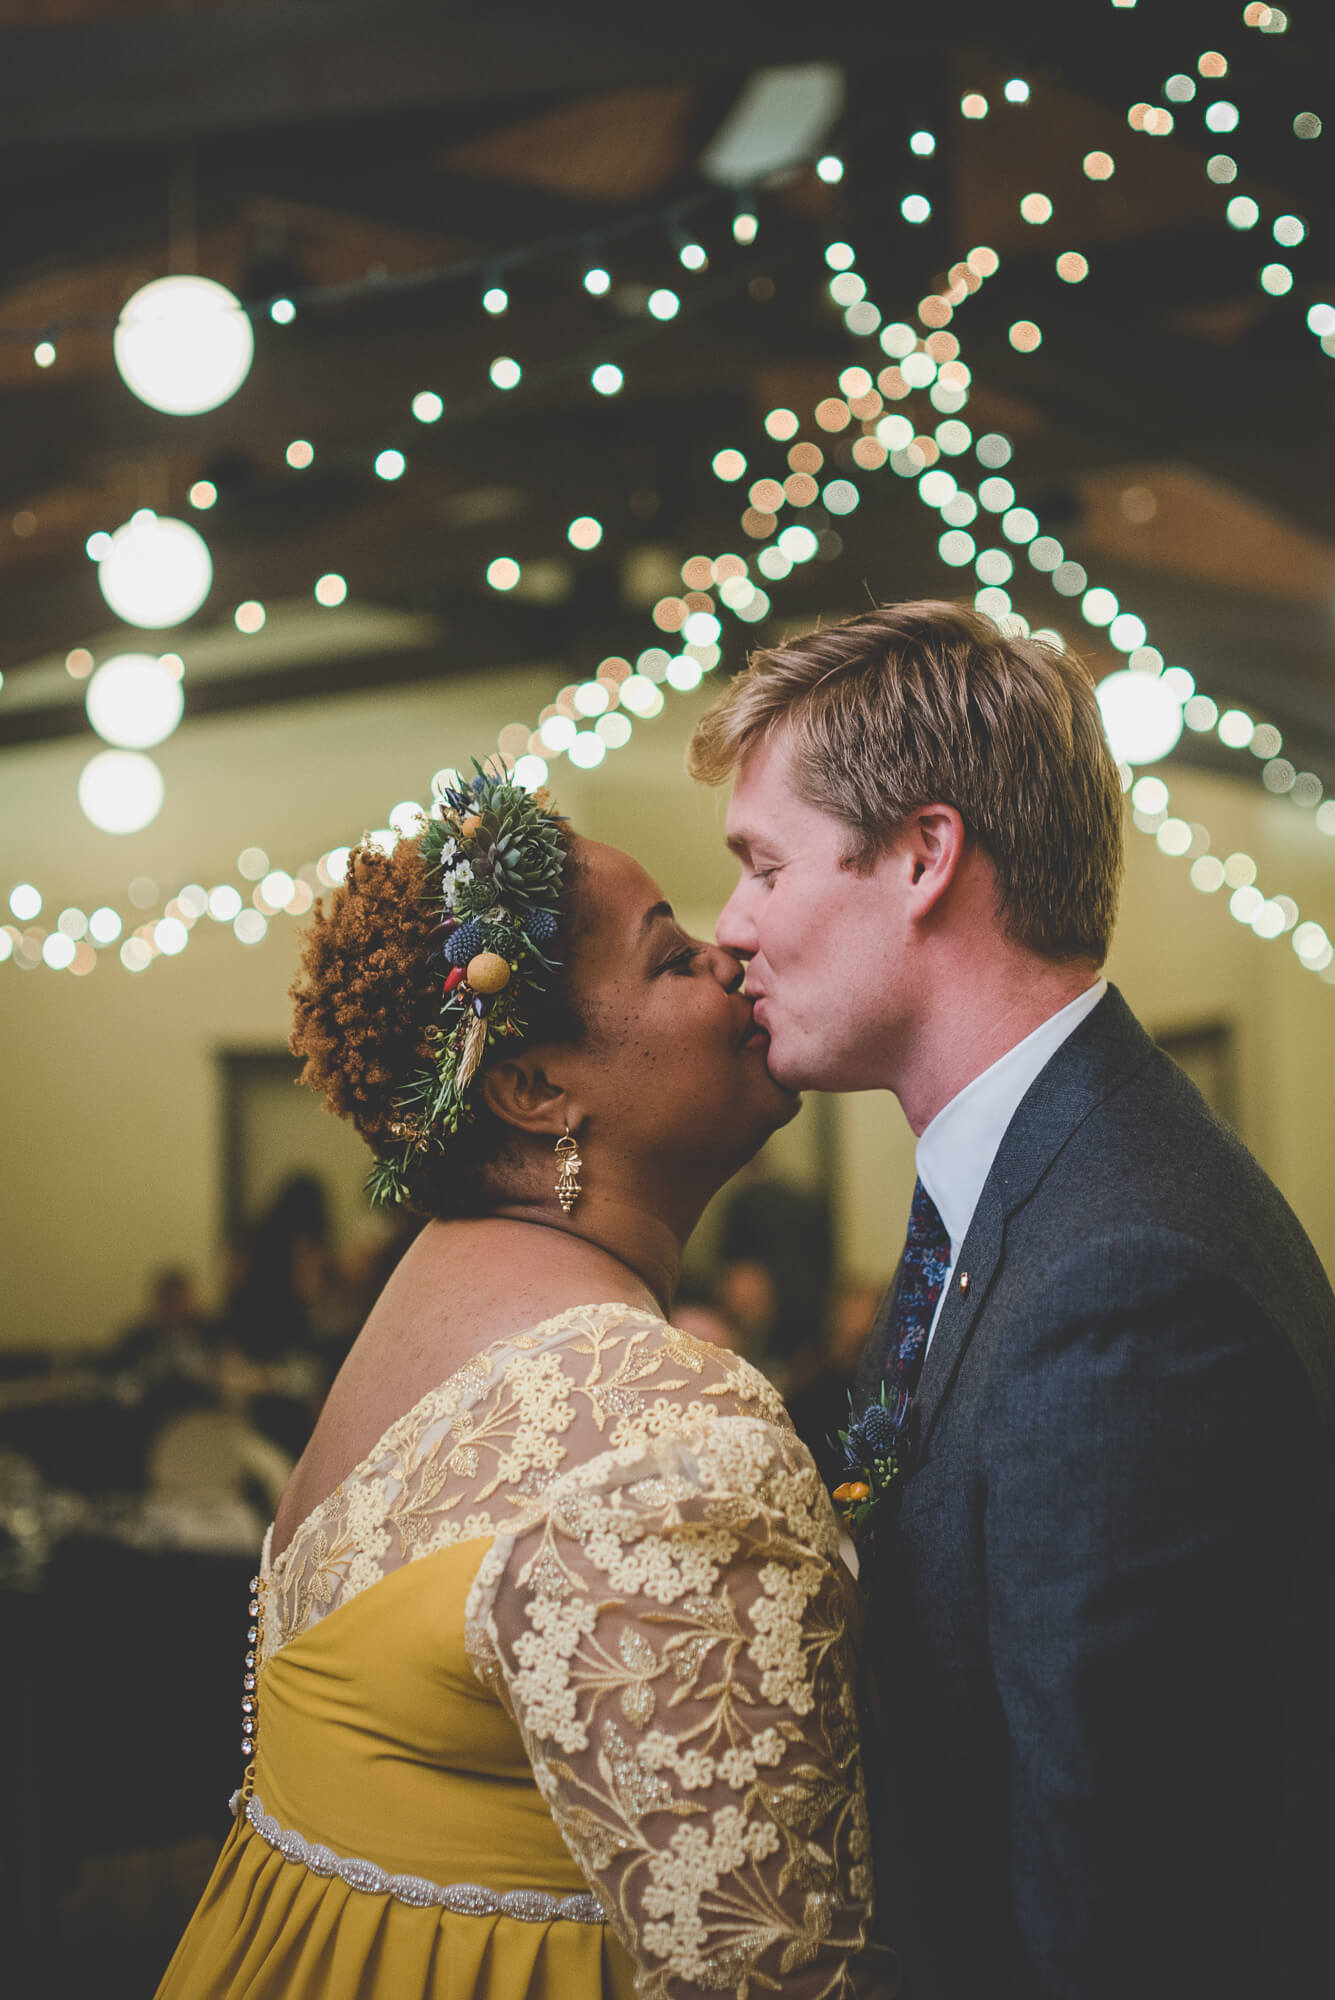 bride in yellow wedding dress with lace sleeves kisses groom during first dance with twinkle lights hanging from wooden ceiling beams